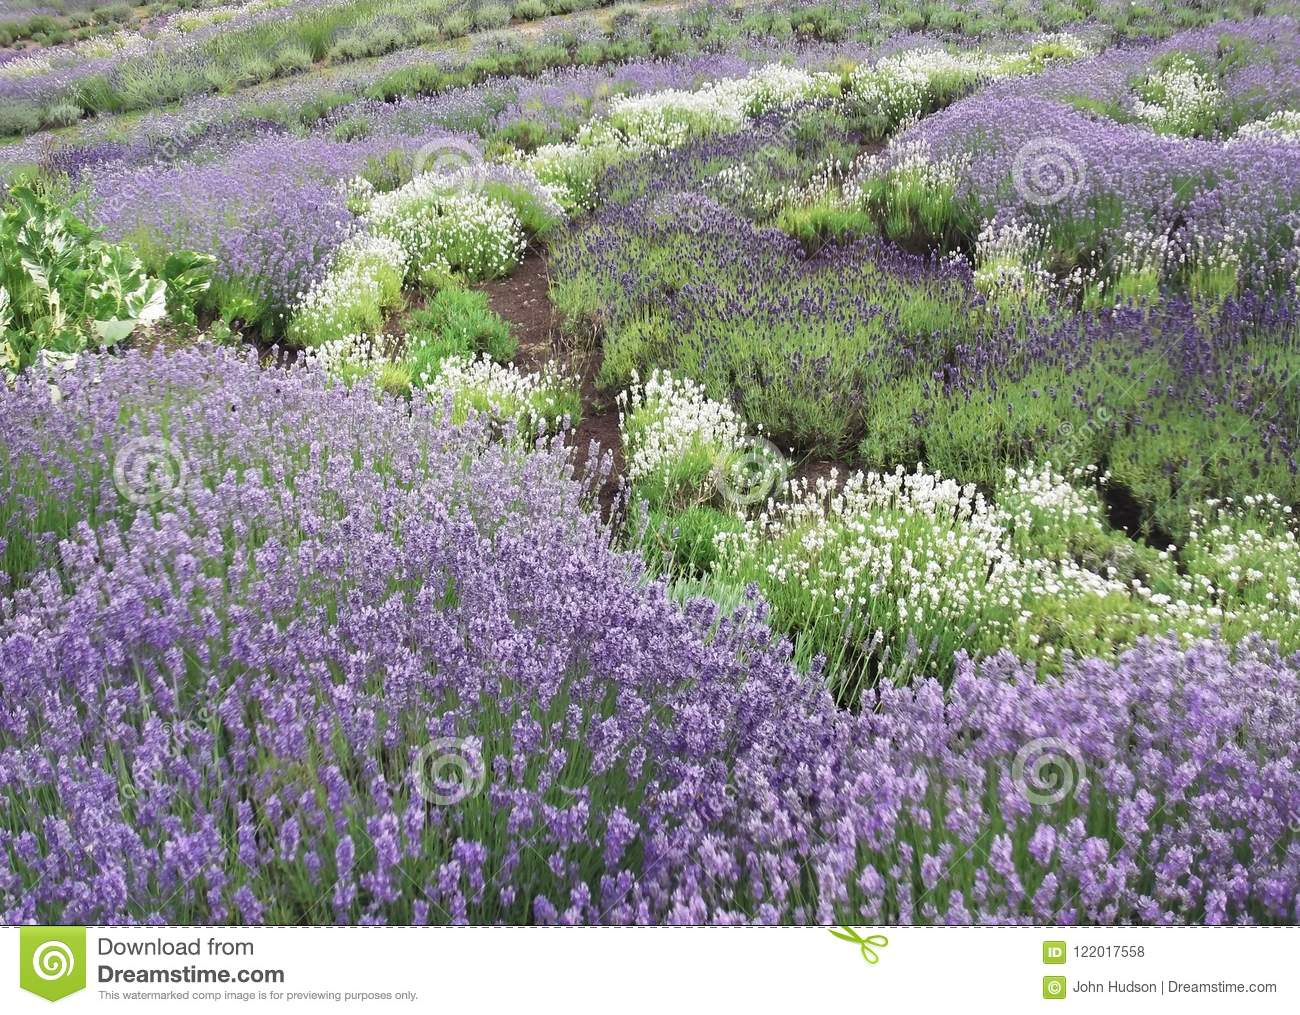 Lavender bushes in profusion in mid summer